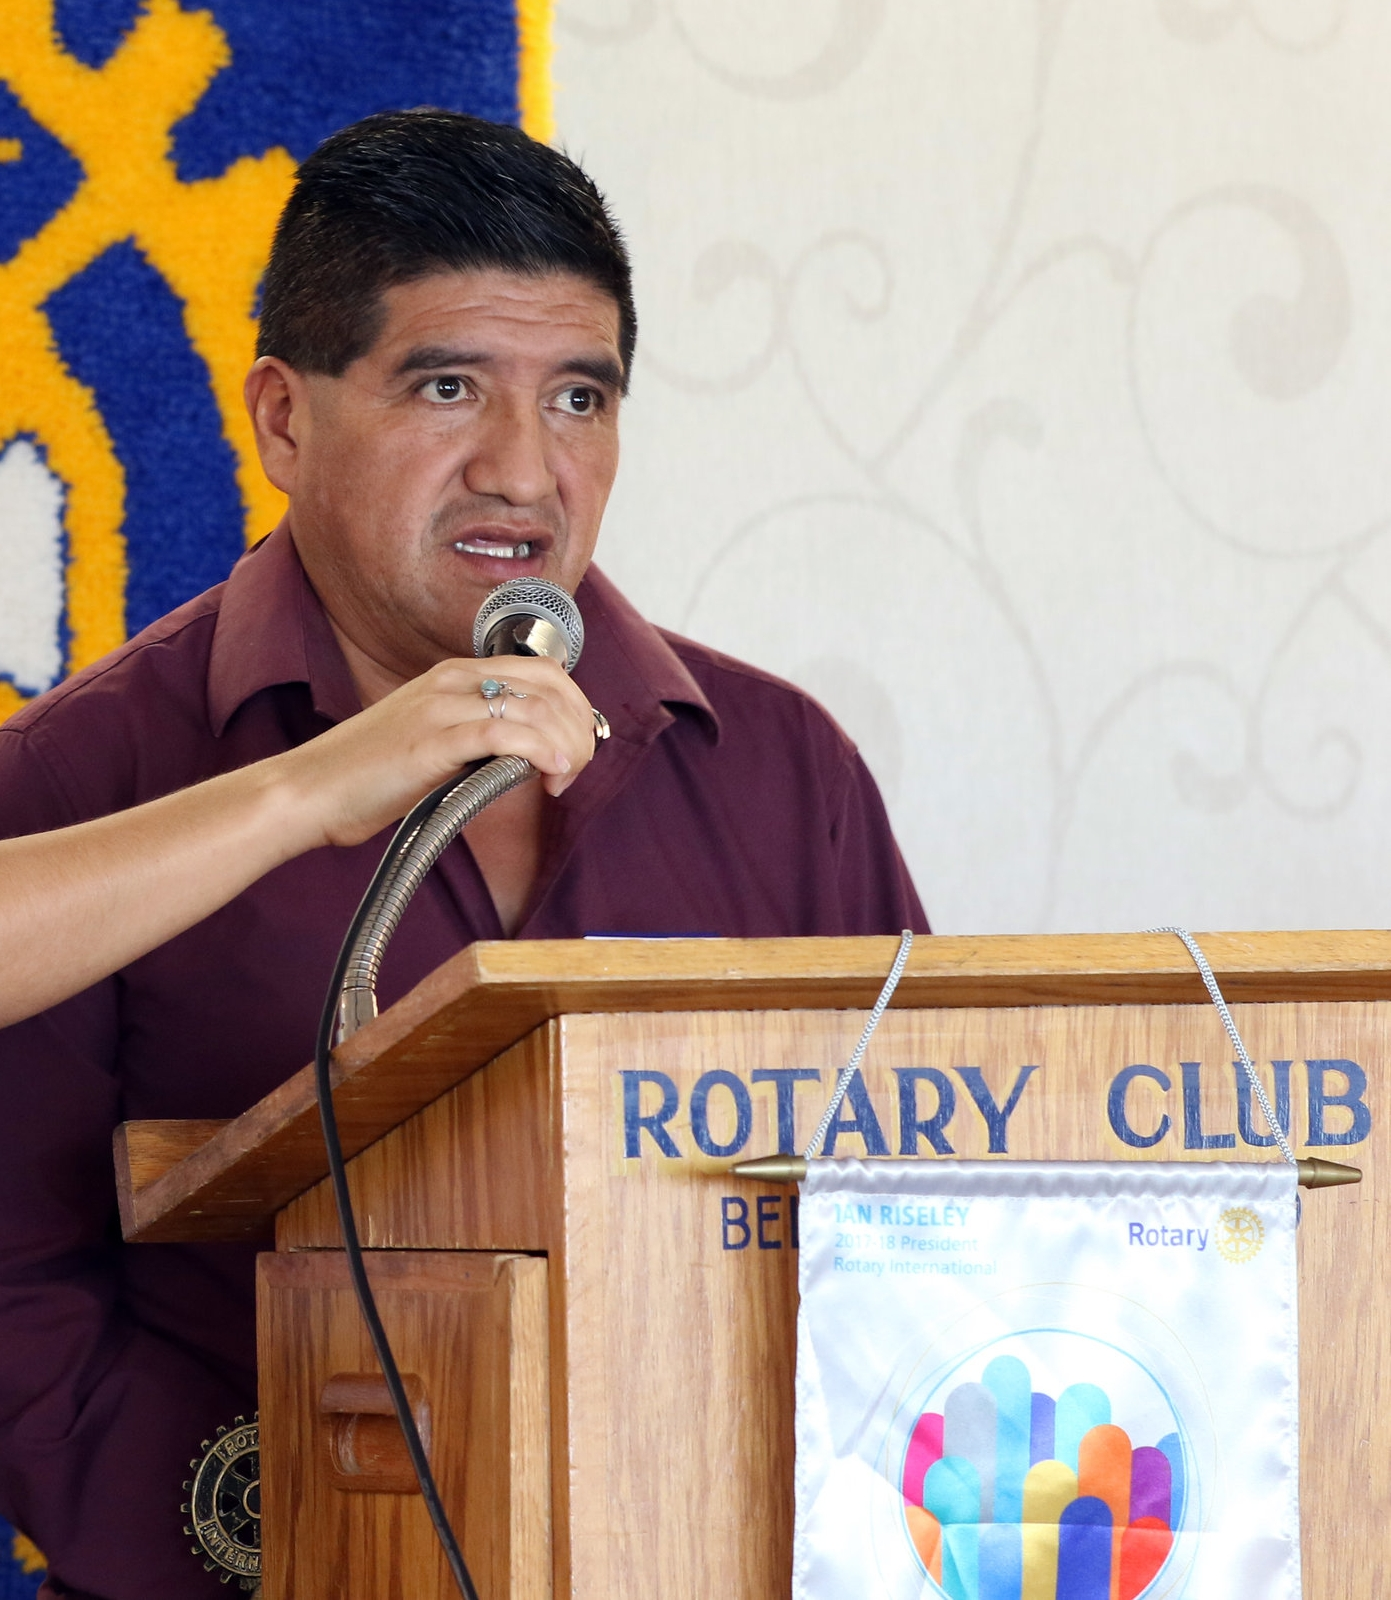 Eusebio spoke at numerous public event during the MNCH project's most recent Knowledge Exchange. He shared his experience promoting gender equality and challenging machismo in his community.